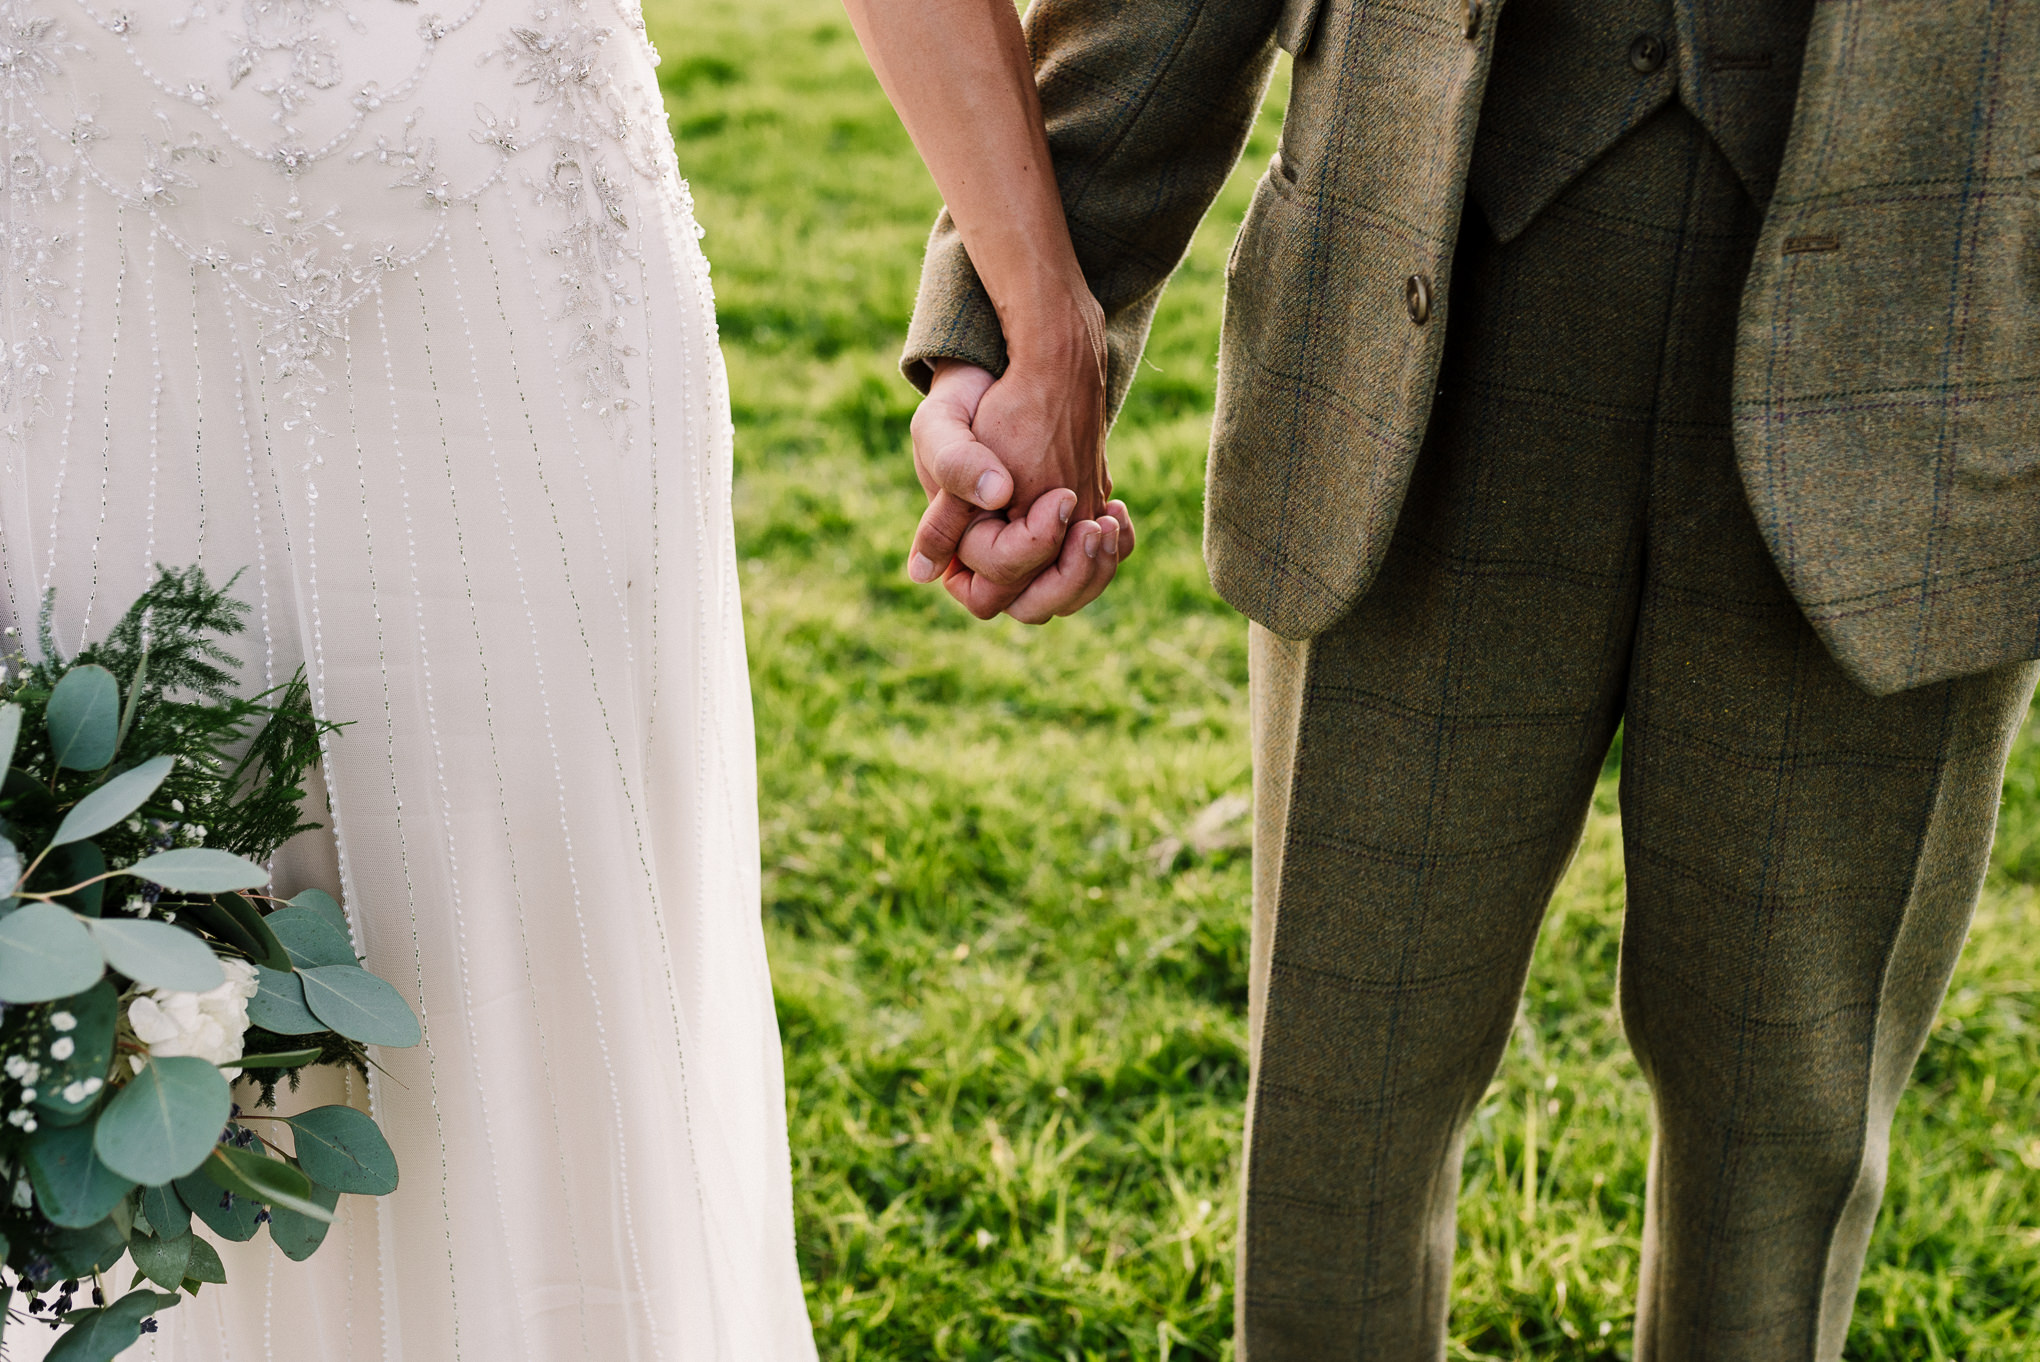 Close up of bride and groom holding hands. Creative wedding photography